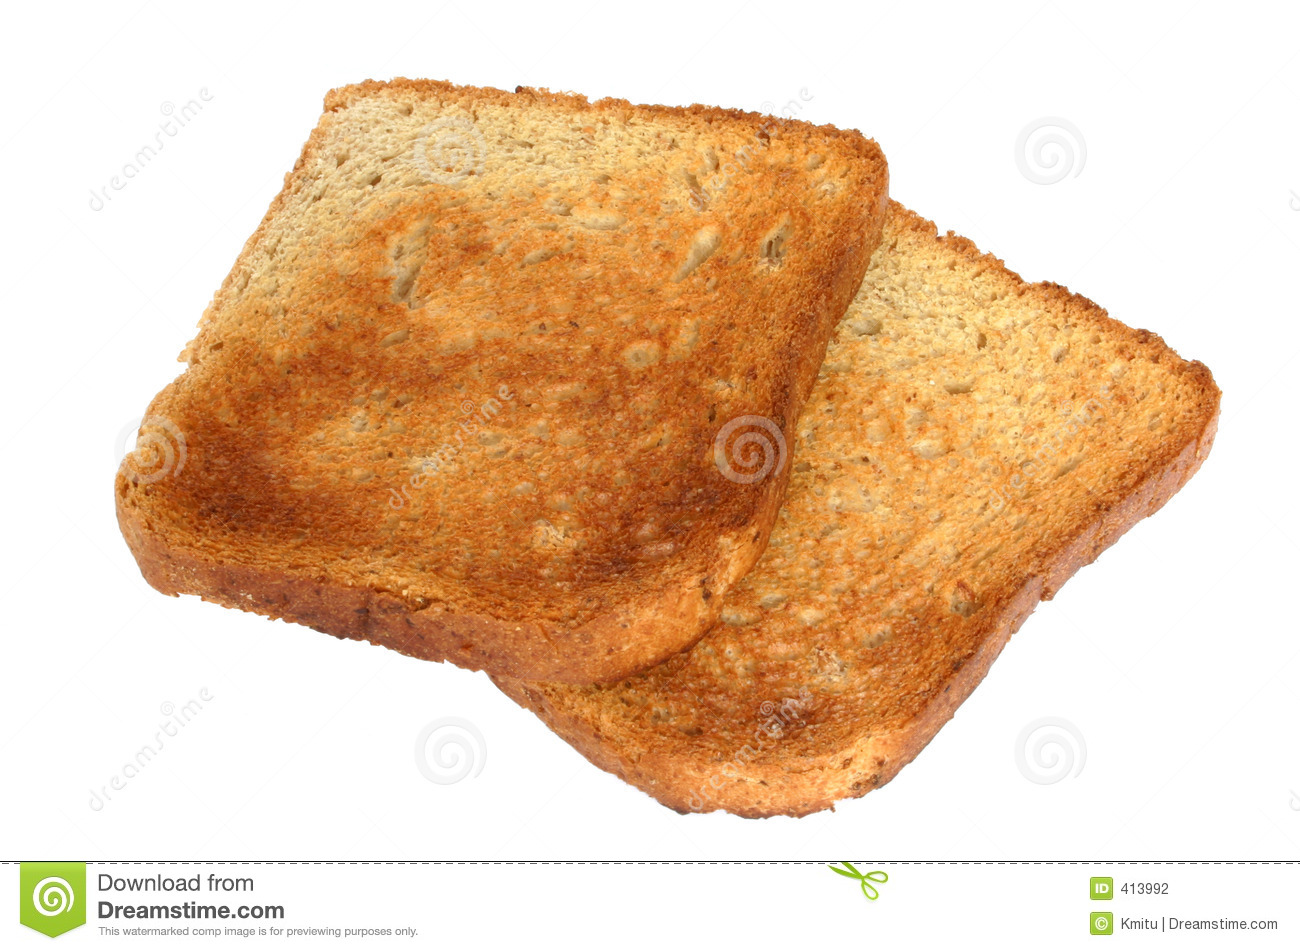 Two pieces of toast #2 stock photo. Image of bakery, everyday - 413992